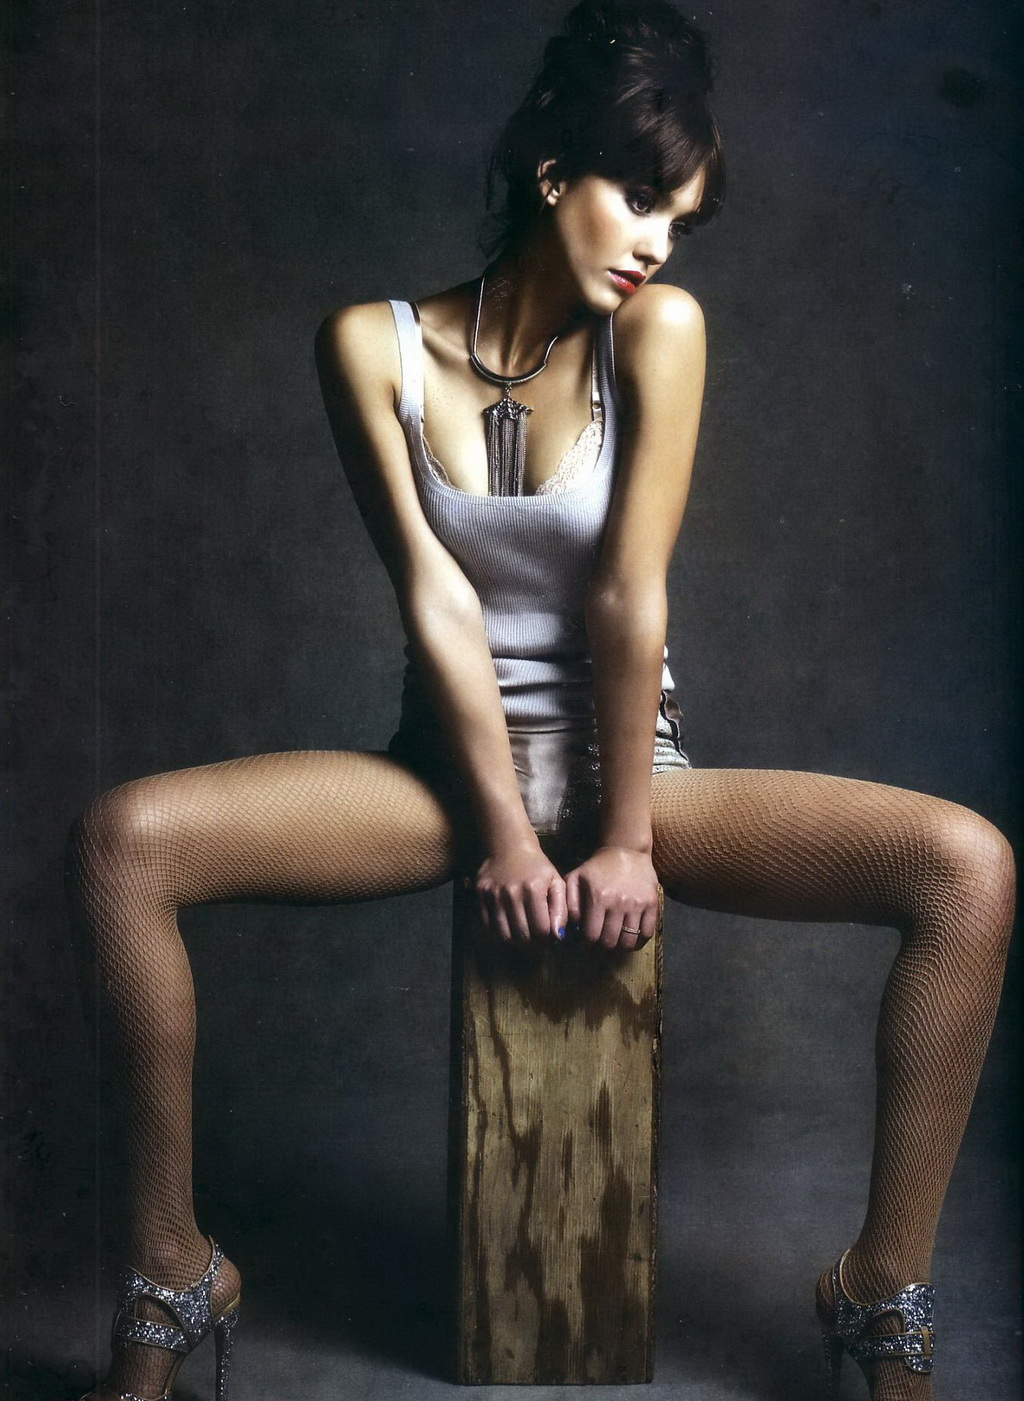 That Jessica alba nyde legs spread open serious?